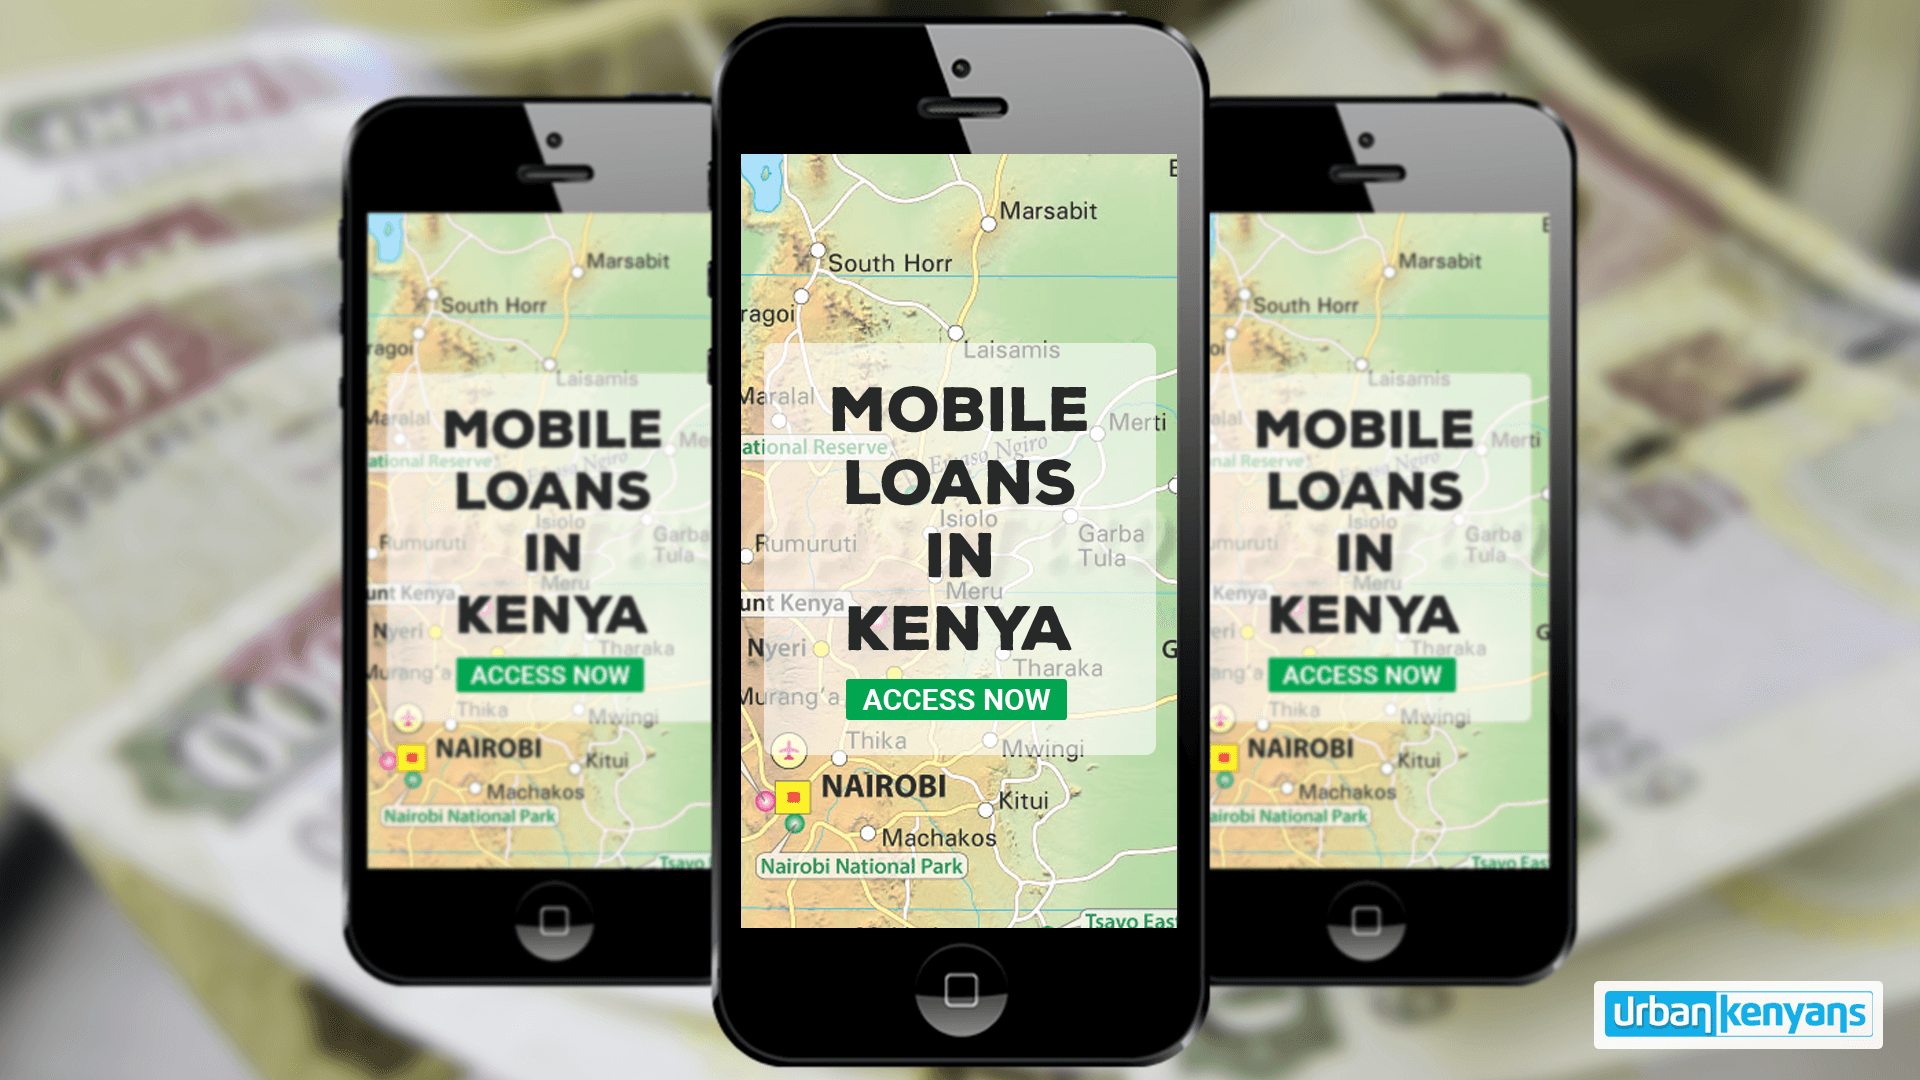 How to Increase Your Loan Limit on Mobile Loan Apps